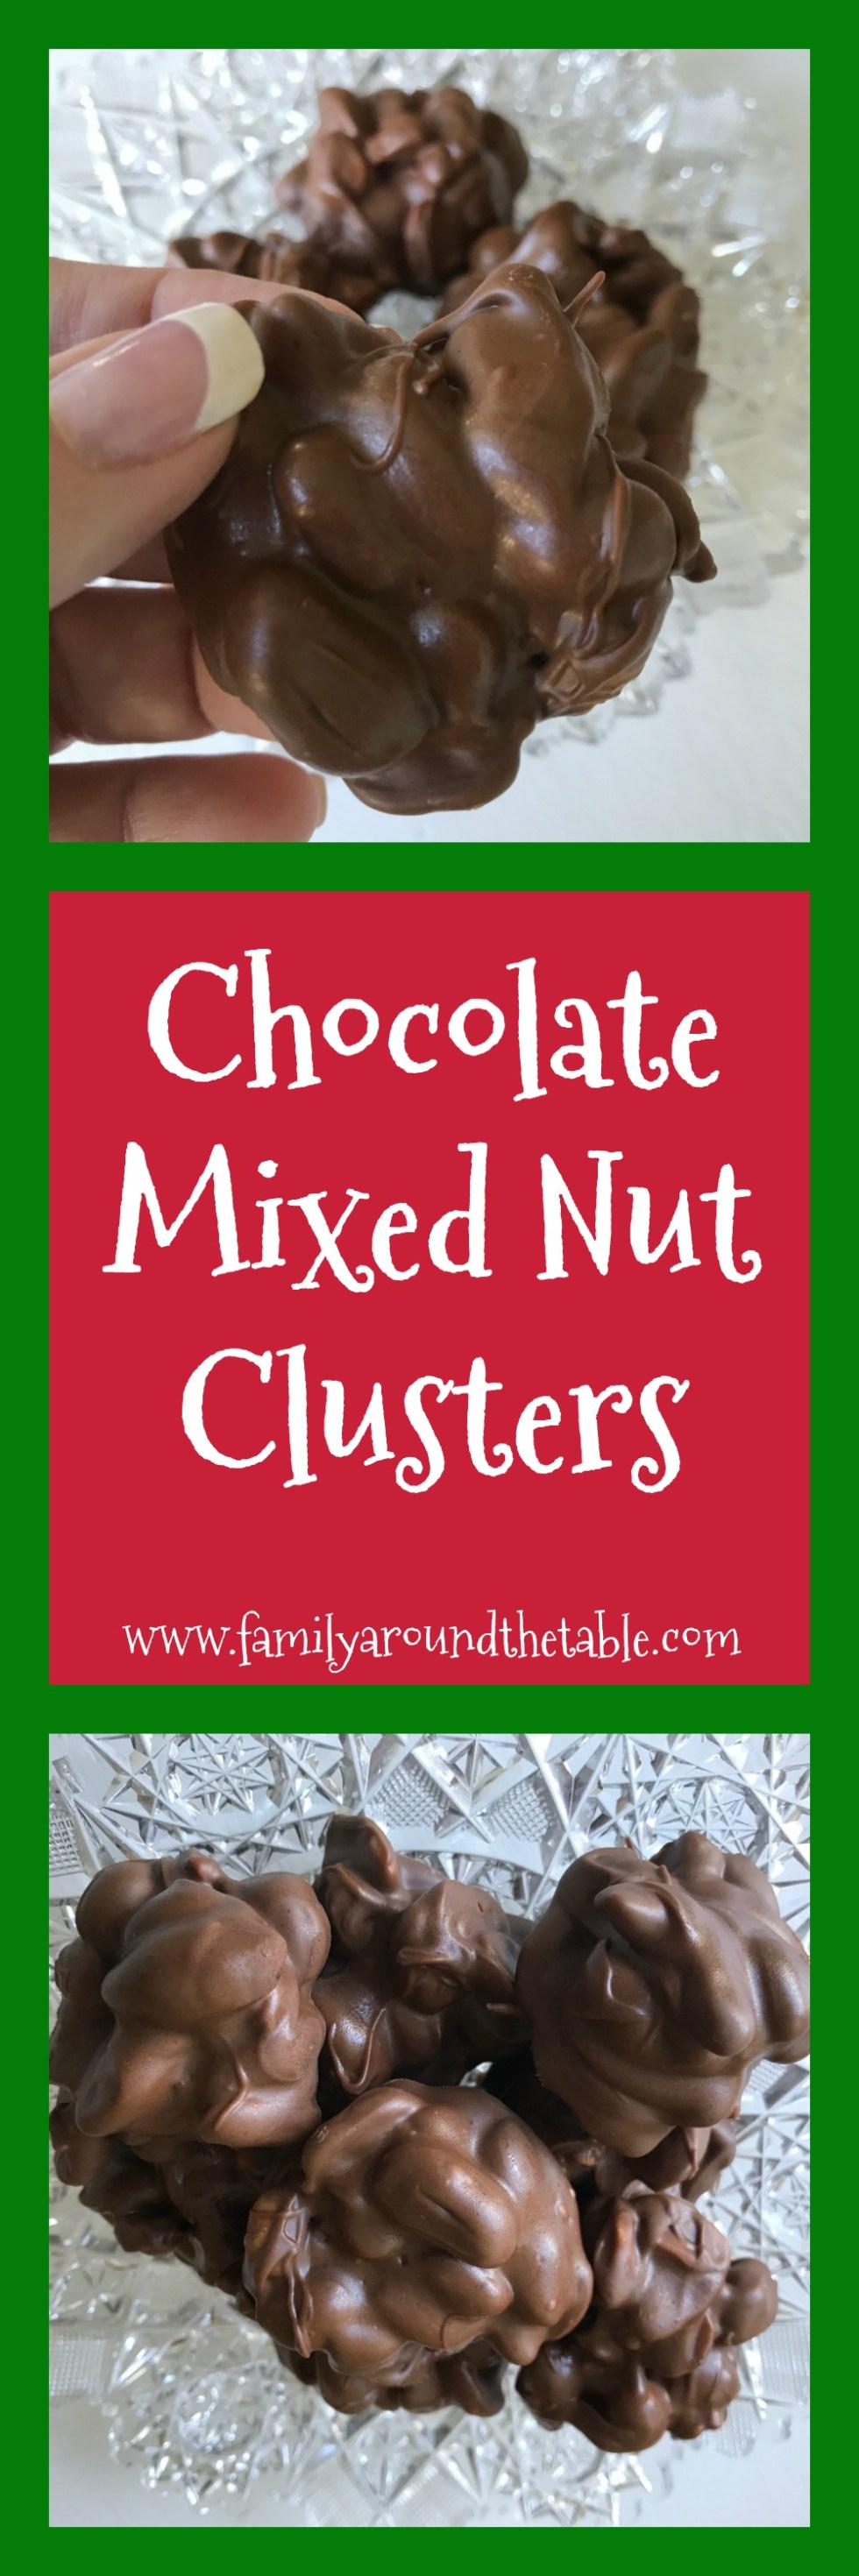 Chocolate mixed nut clusters make a delicious holiday hostess gift.